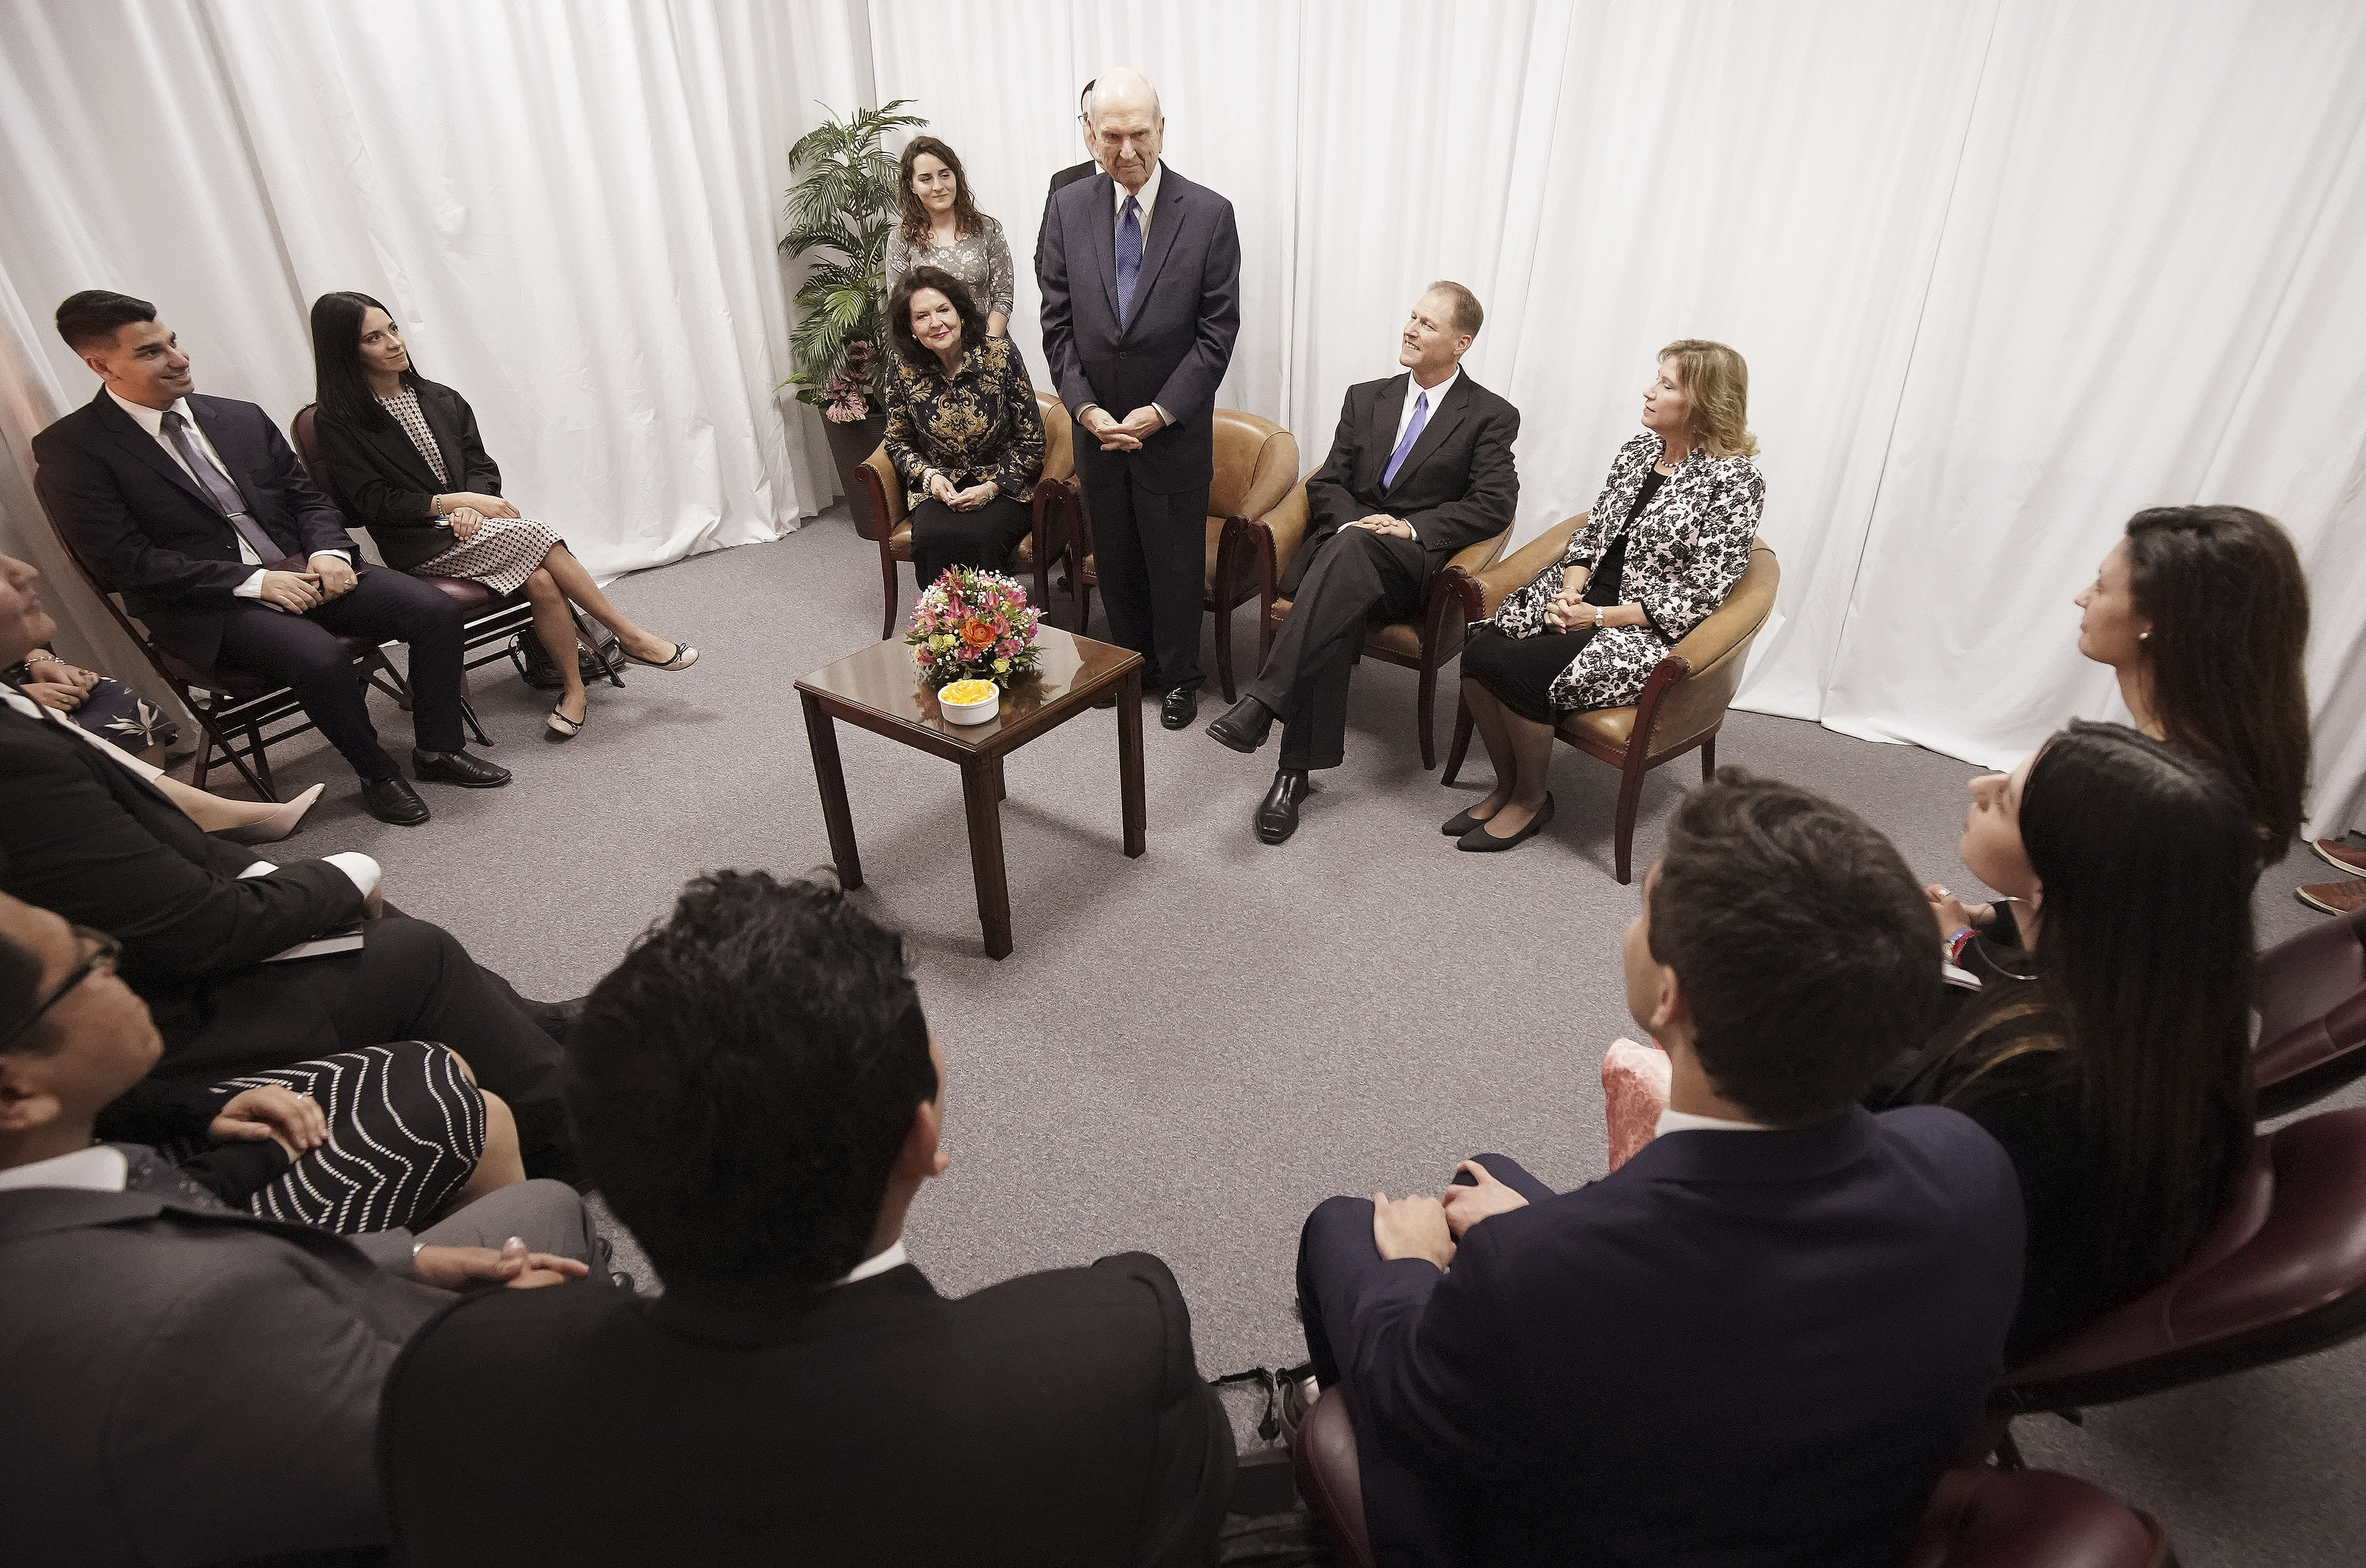 President Russell M. Nelson of The Church of Jesus Christ of Latter-day Saints and his wife, Sister Wendy Nelson, meet with youth prior to a devotional in Buenos Aires, Argentina, on Wednesday, Aug. 28, 2019.